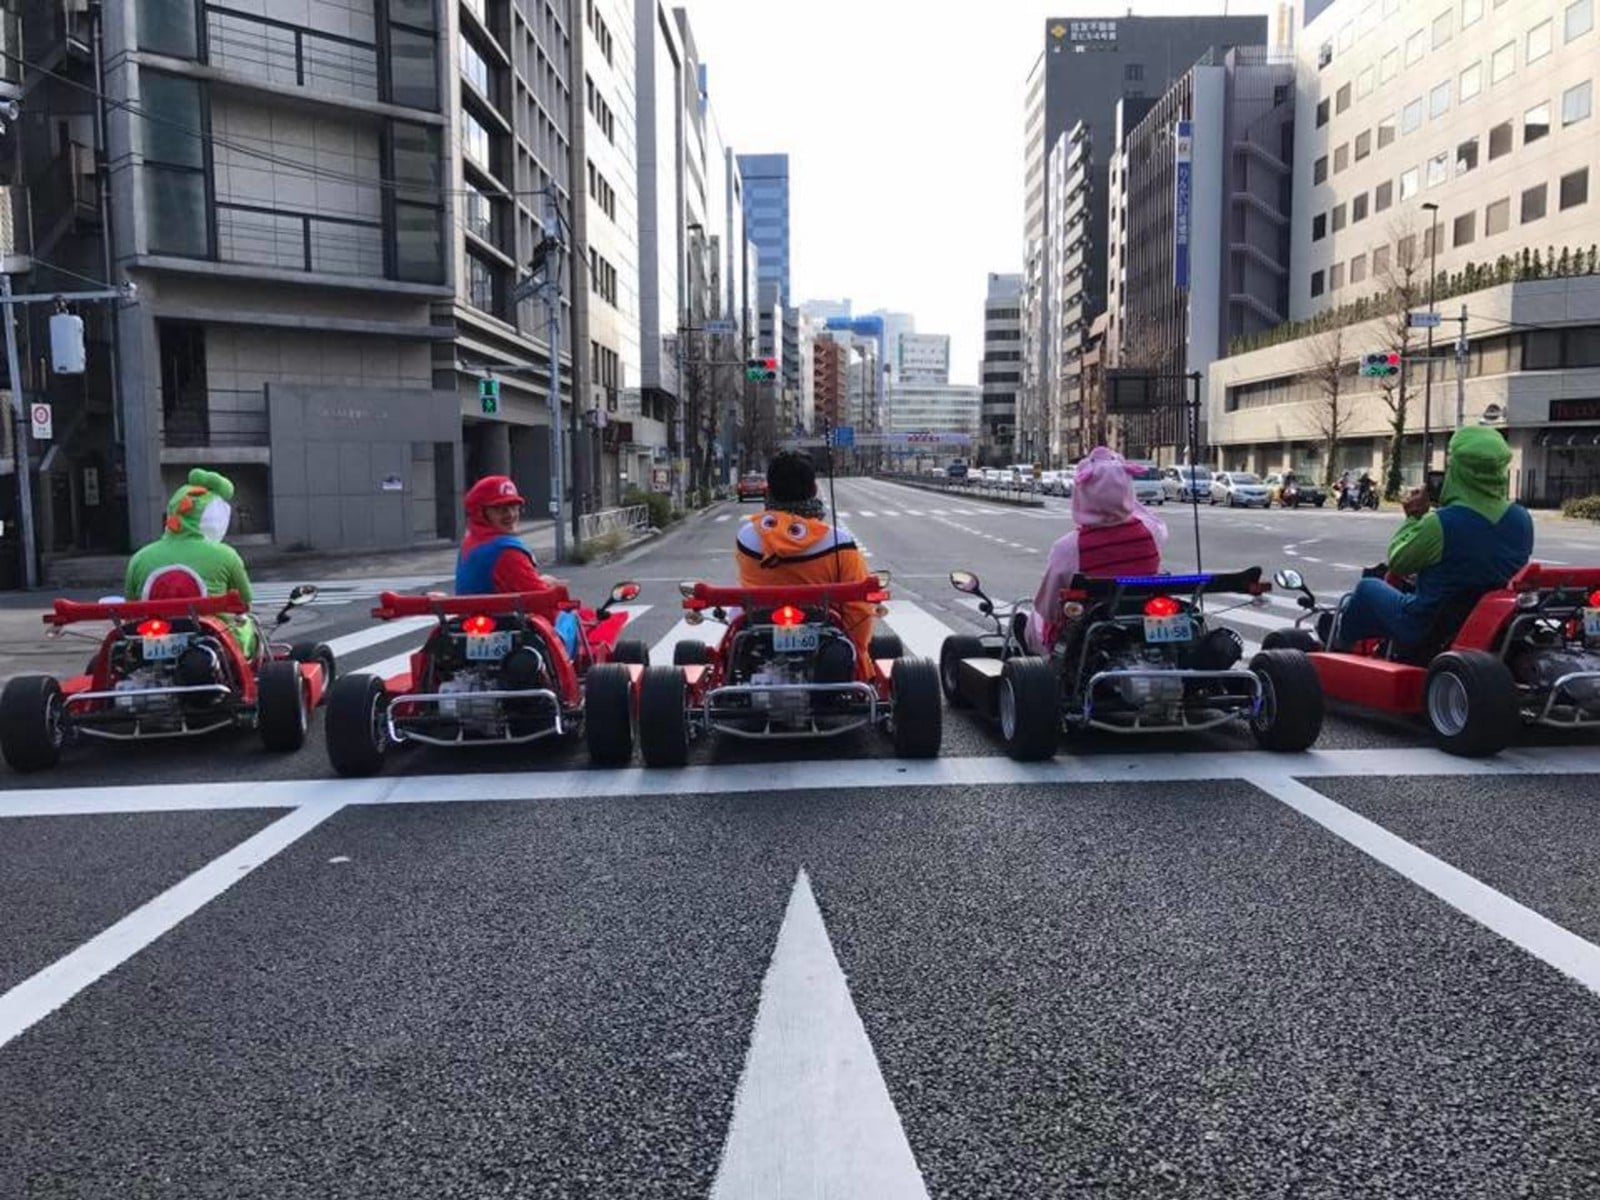 People driving a go-kart wearing characters' costumes